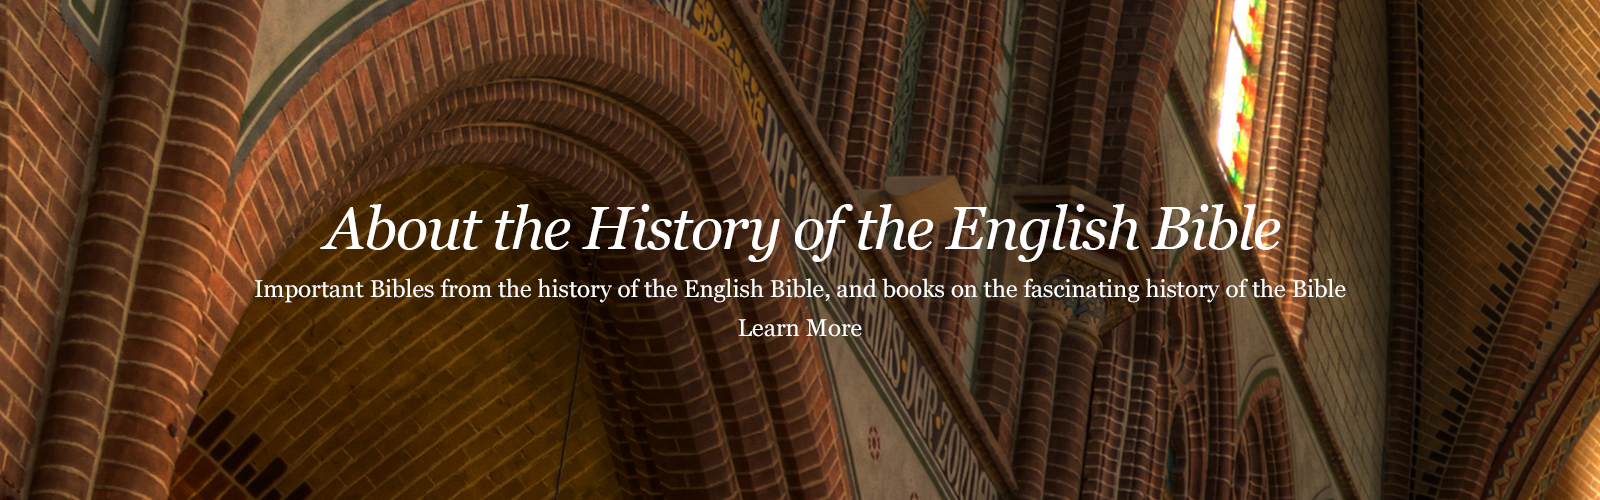 About the history of the English Bible.